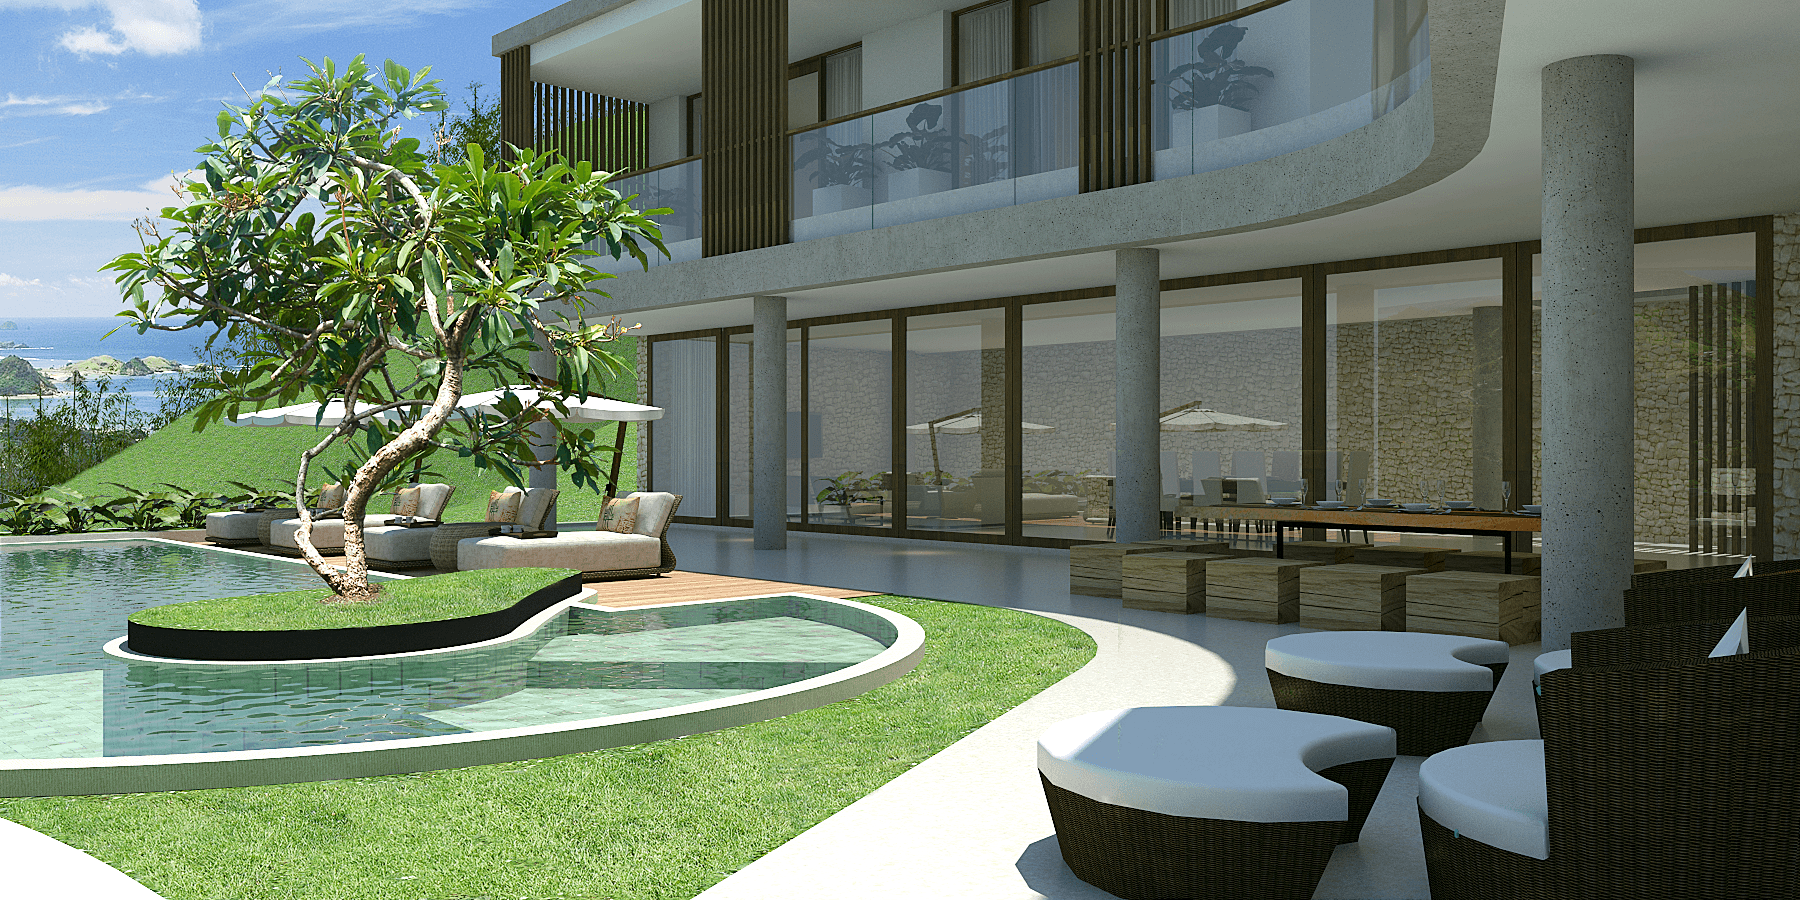 Pt. Indodesign Kreasi Mandiri Lombok Hotel South Lombok Kuta South Lombok Kuta Swimming Pool  <P>Villa 4Brm</p> 16095